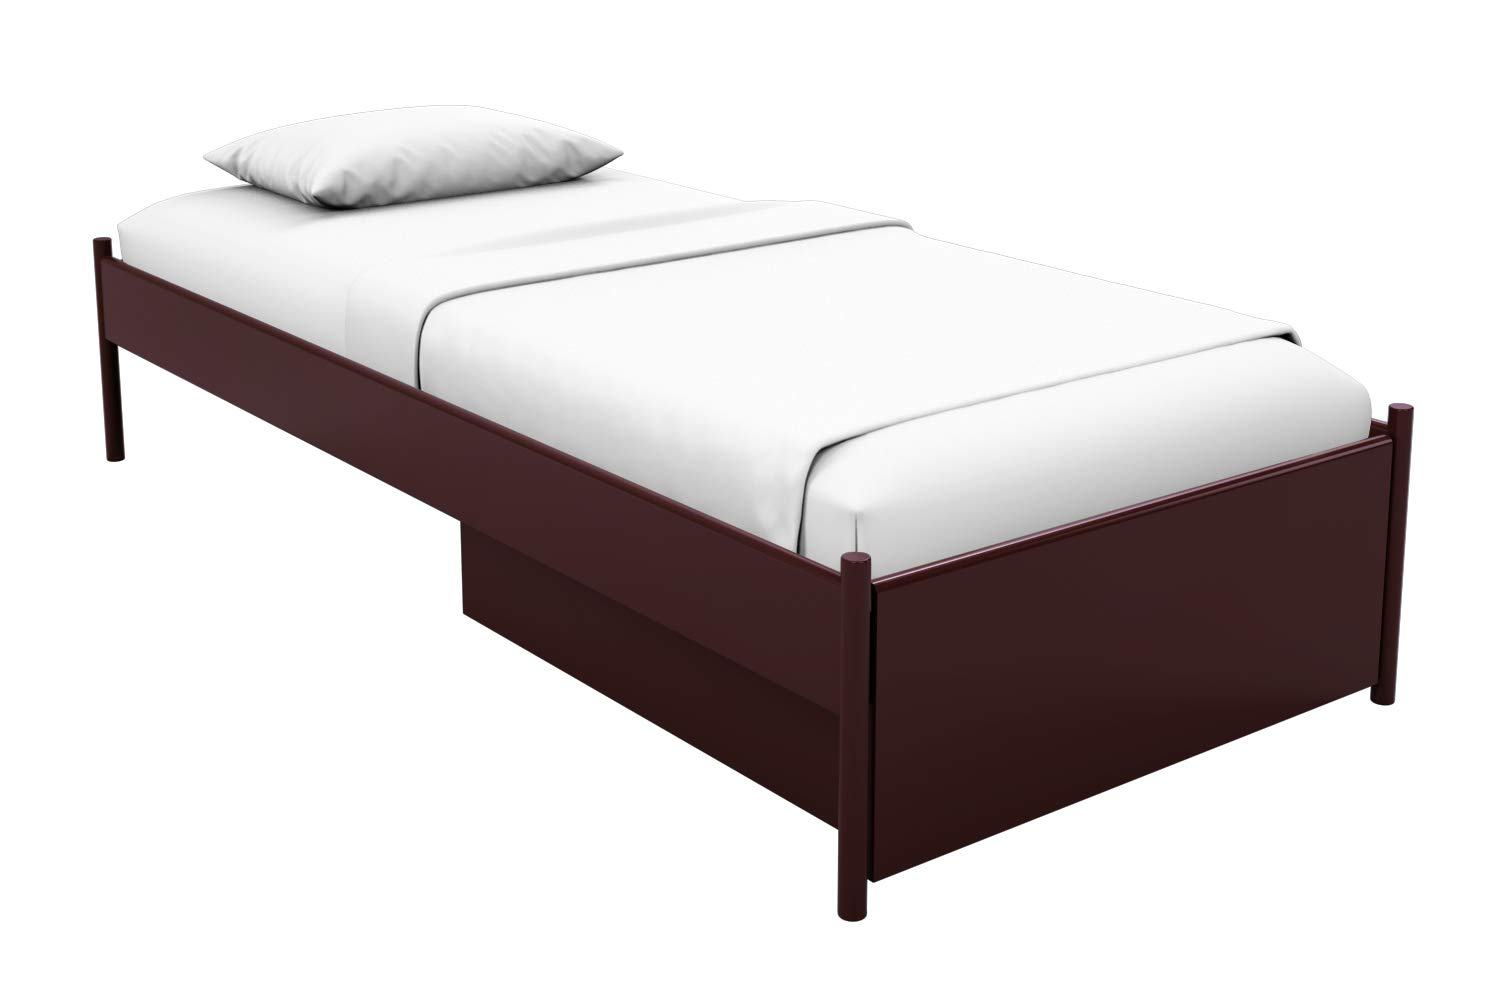 Godrej Interio Liva Single Size Bed with Storage (Shell Wine Red)